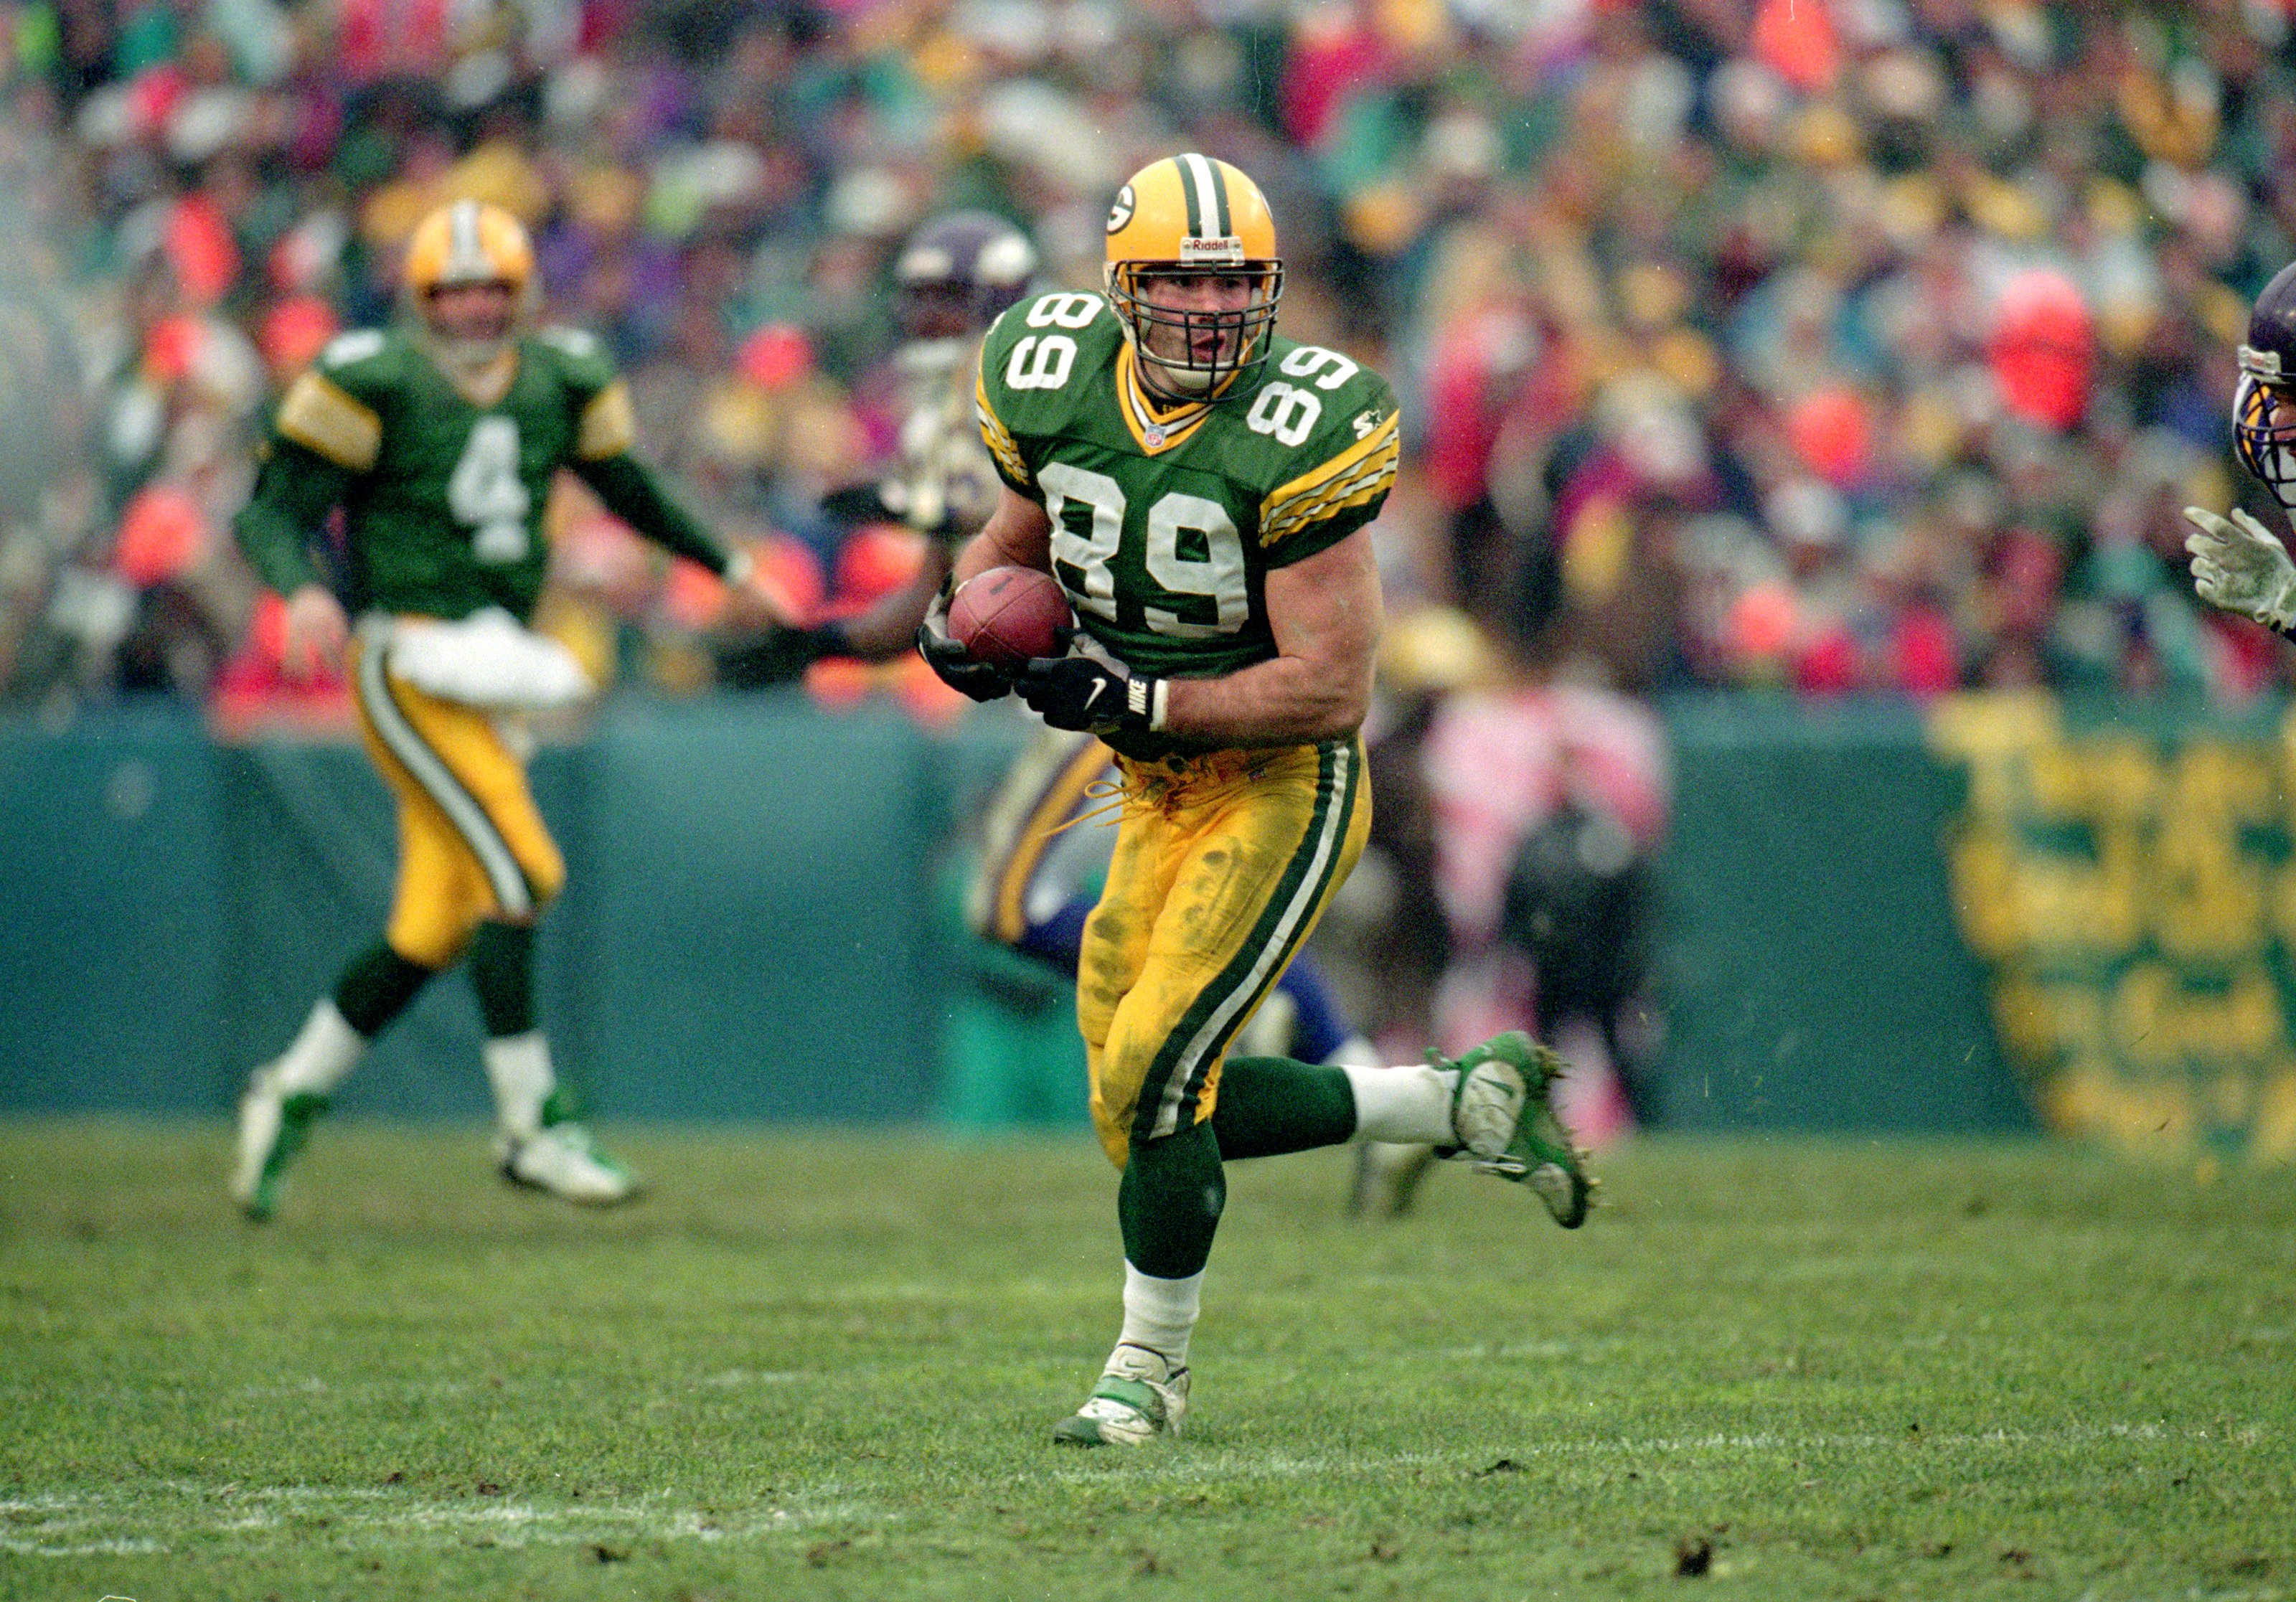 The 1996 Green Bay Packers